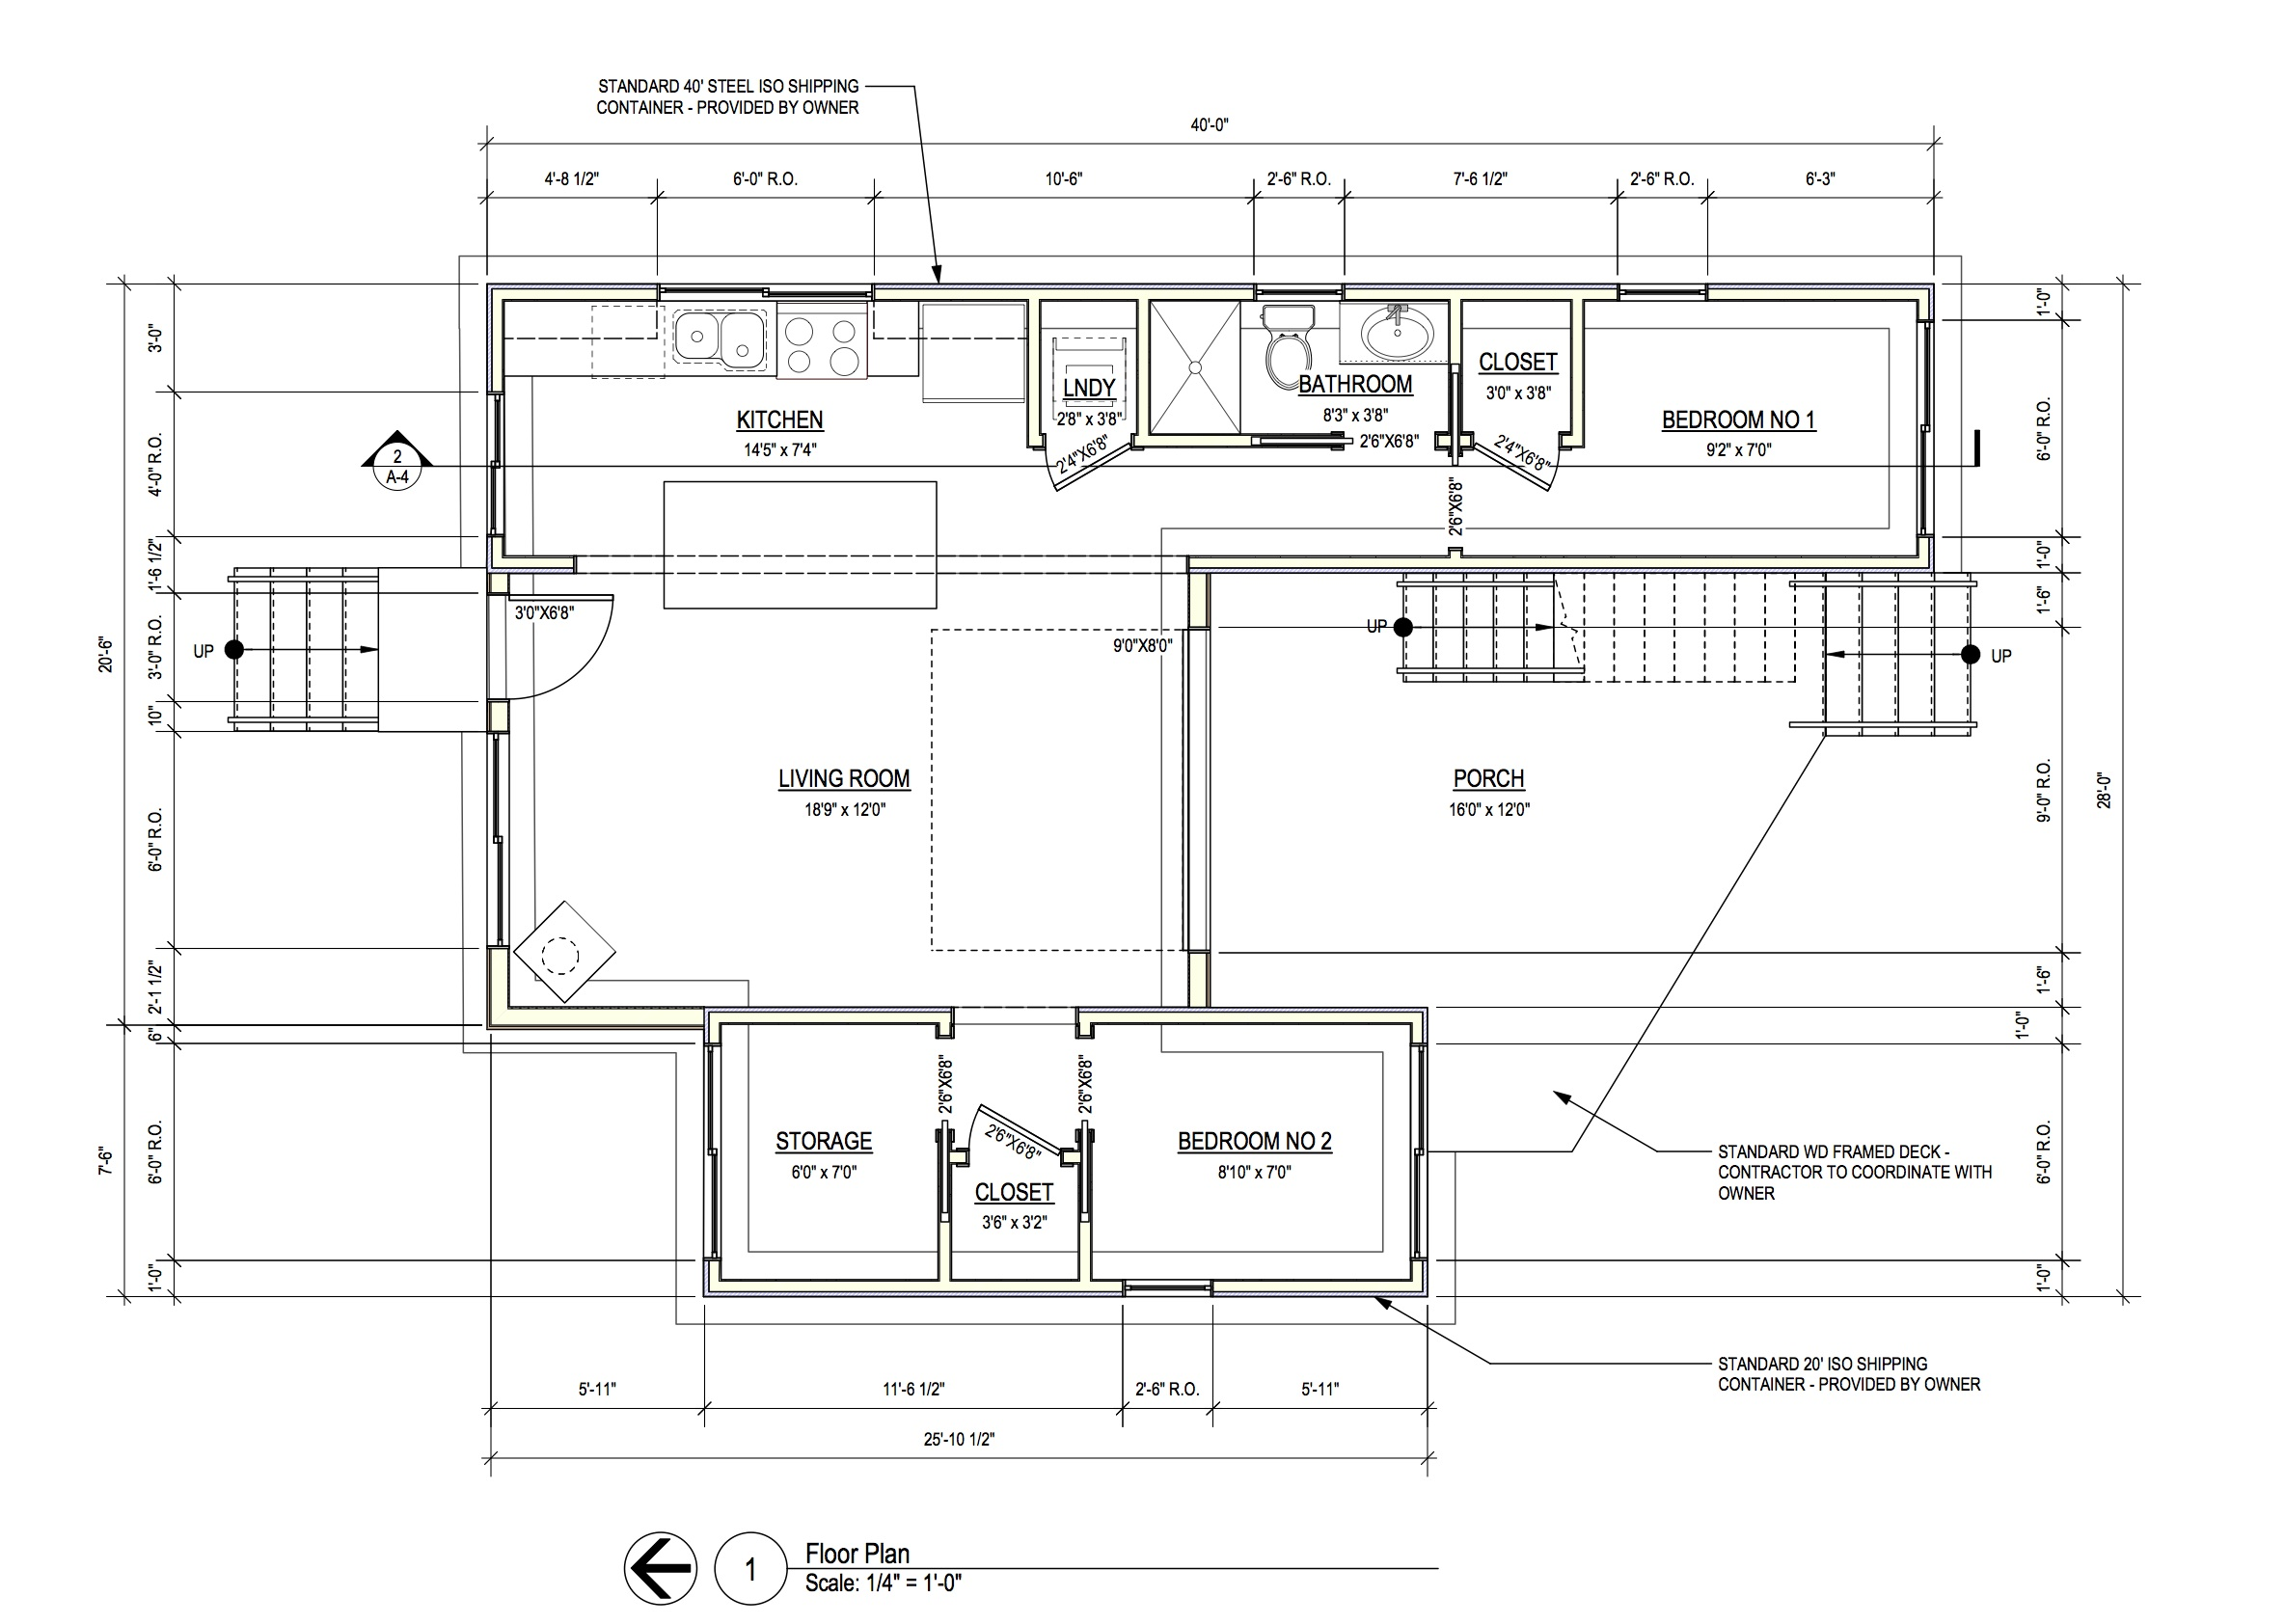 home floor plans shipping container home floor plans home floor plans home interior design